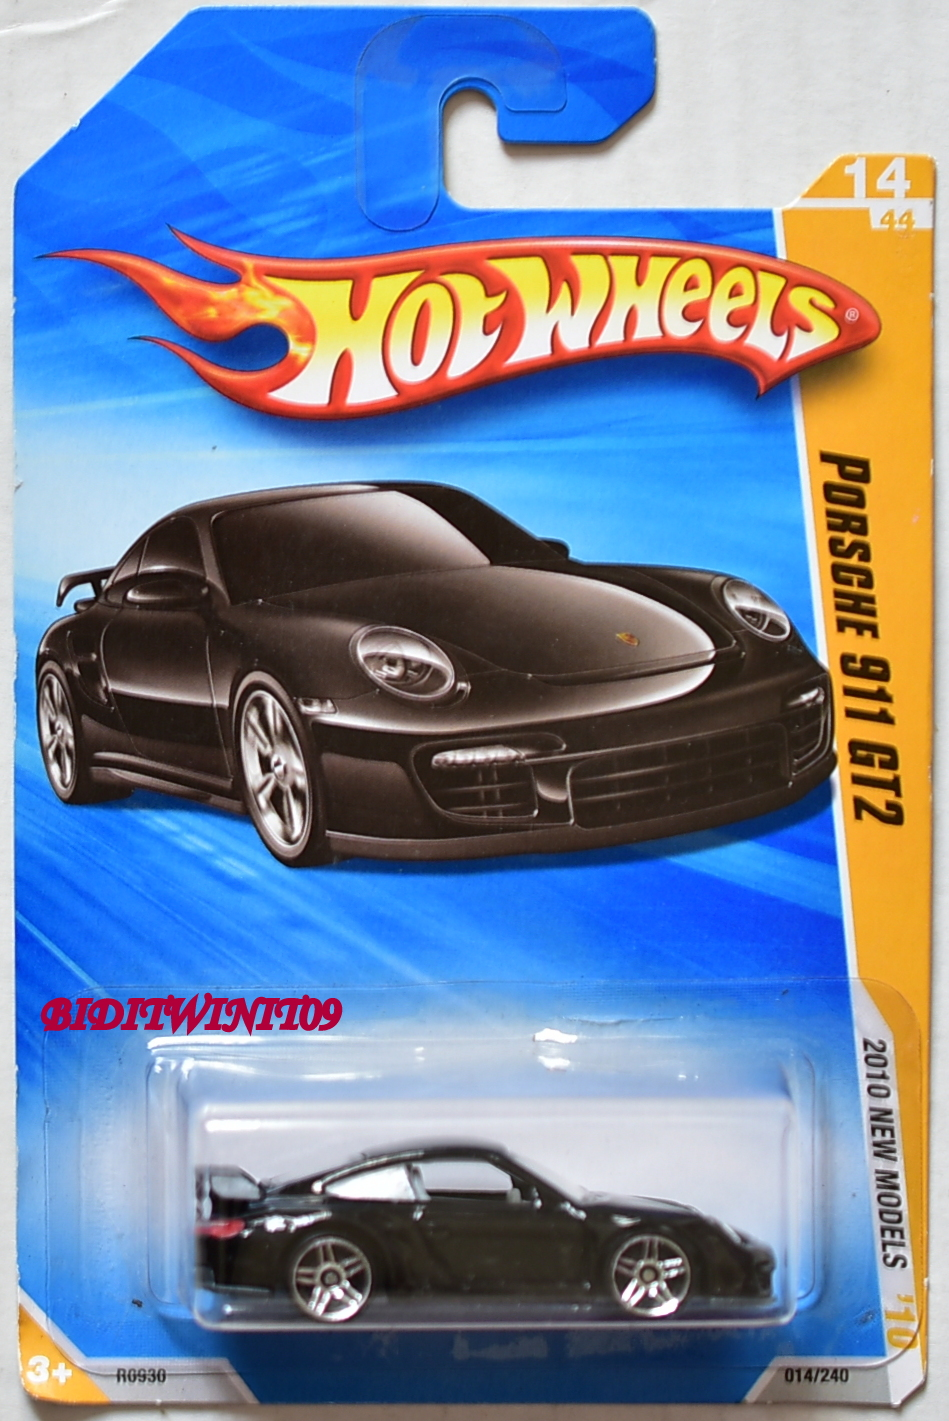 HOT WHEELS 2010 NEW MODELS PORSCHE 911 GT2 #14/44 BLACK